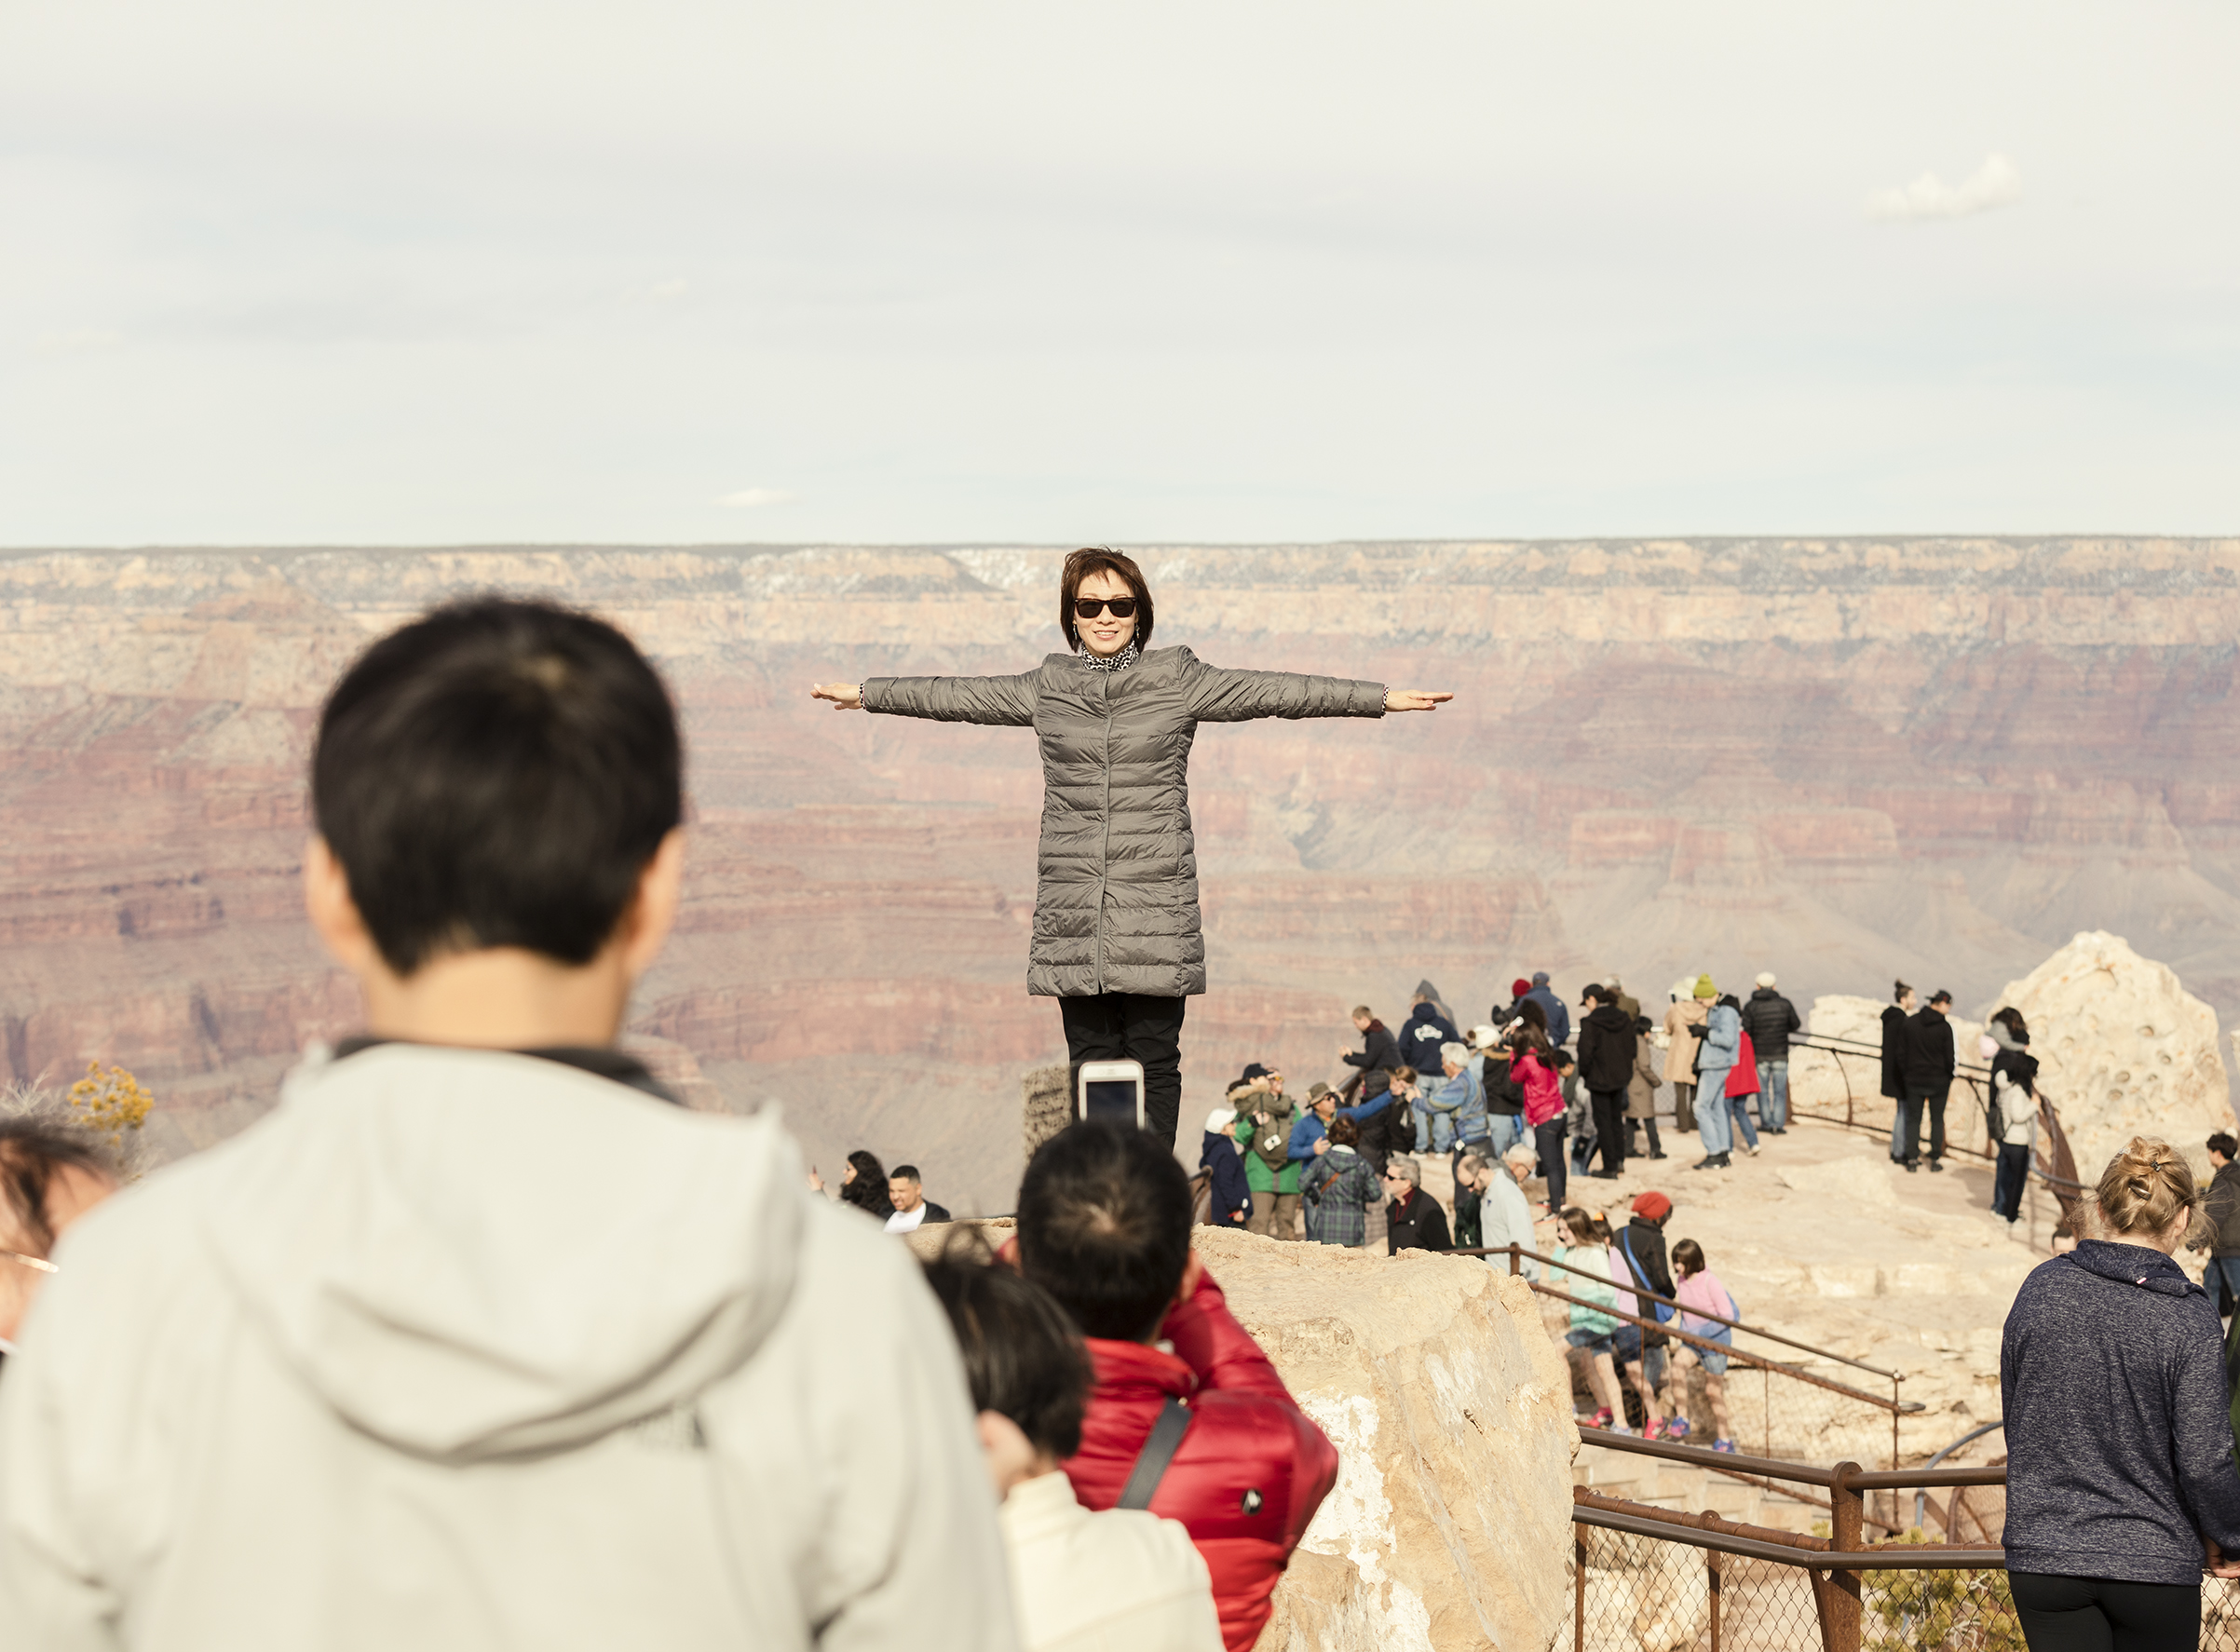 A visitor poses for a photo at Grand Canyon National Park on March 1